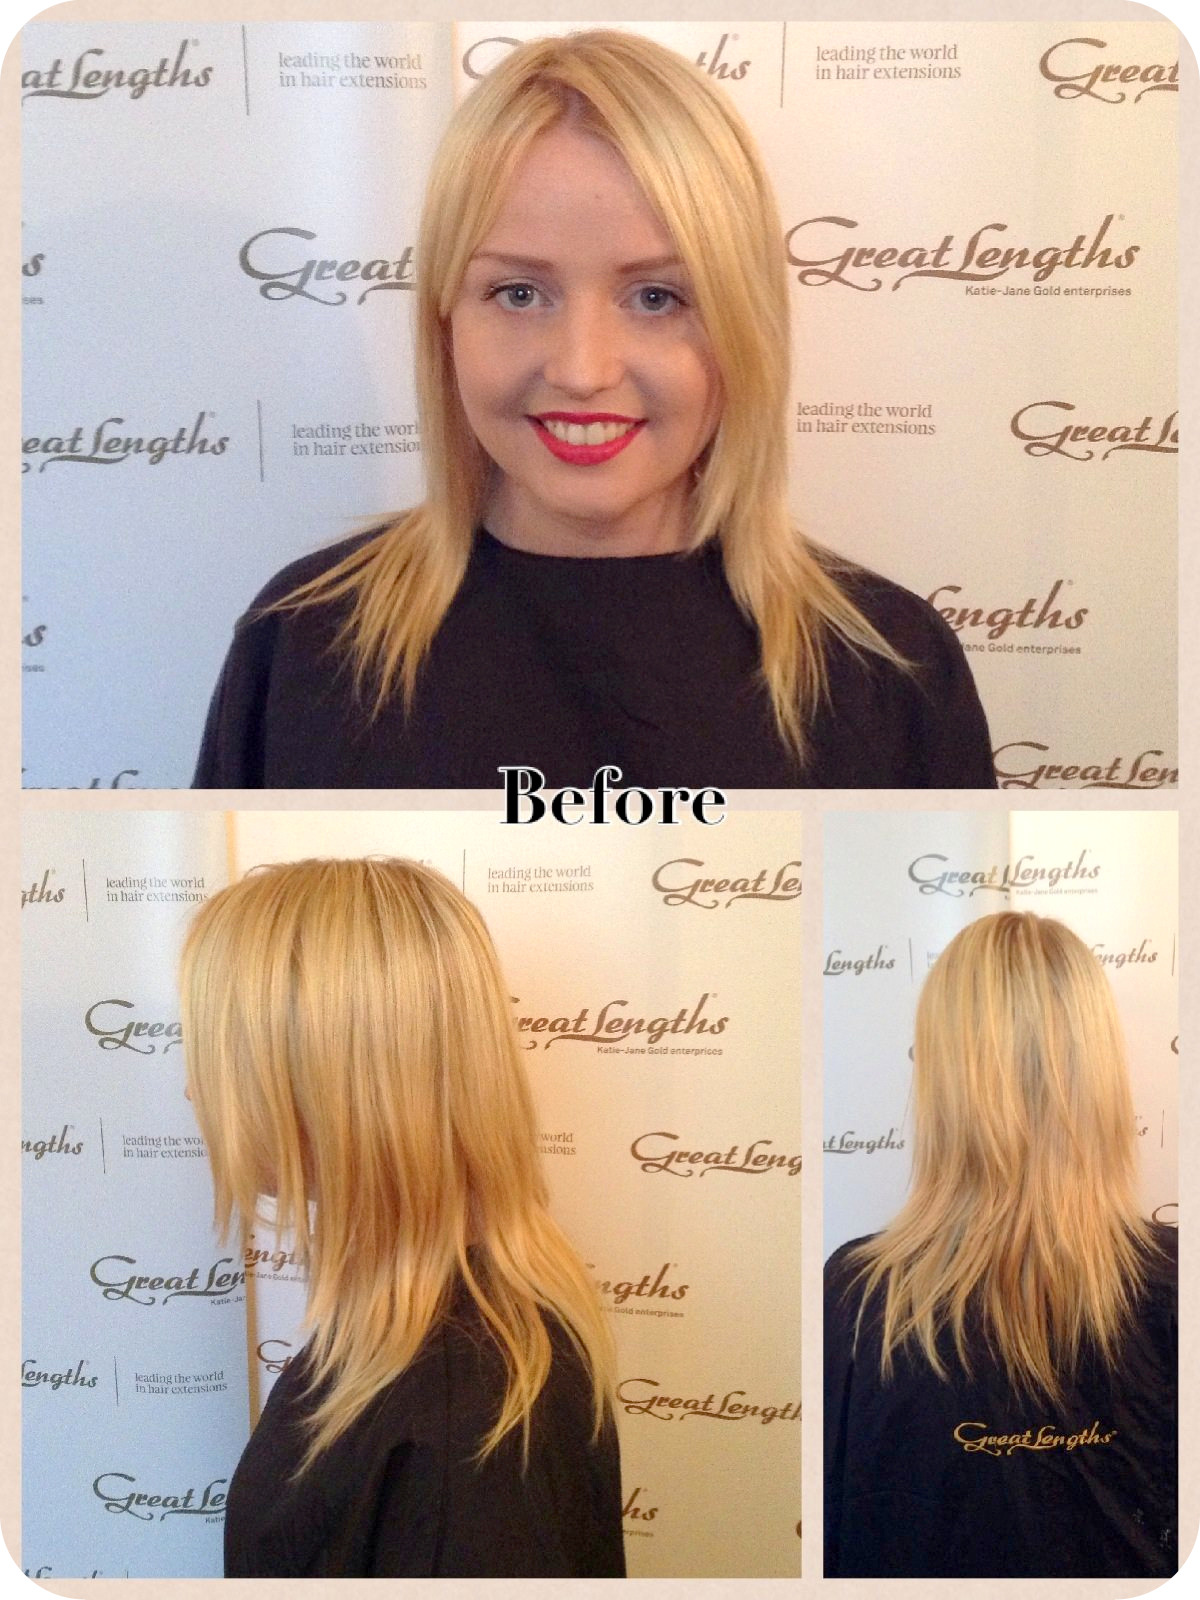 Lipstick gossip by great lengths ireland hair extensions my great lengths ireland hair extensions my experience pmusecretfo Gallery